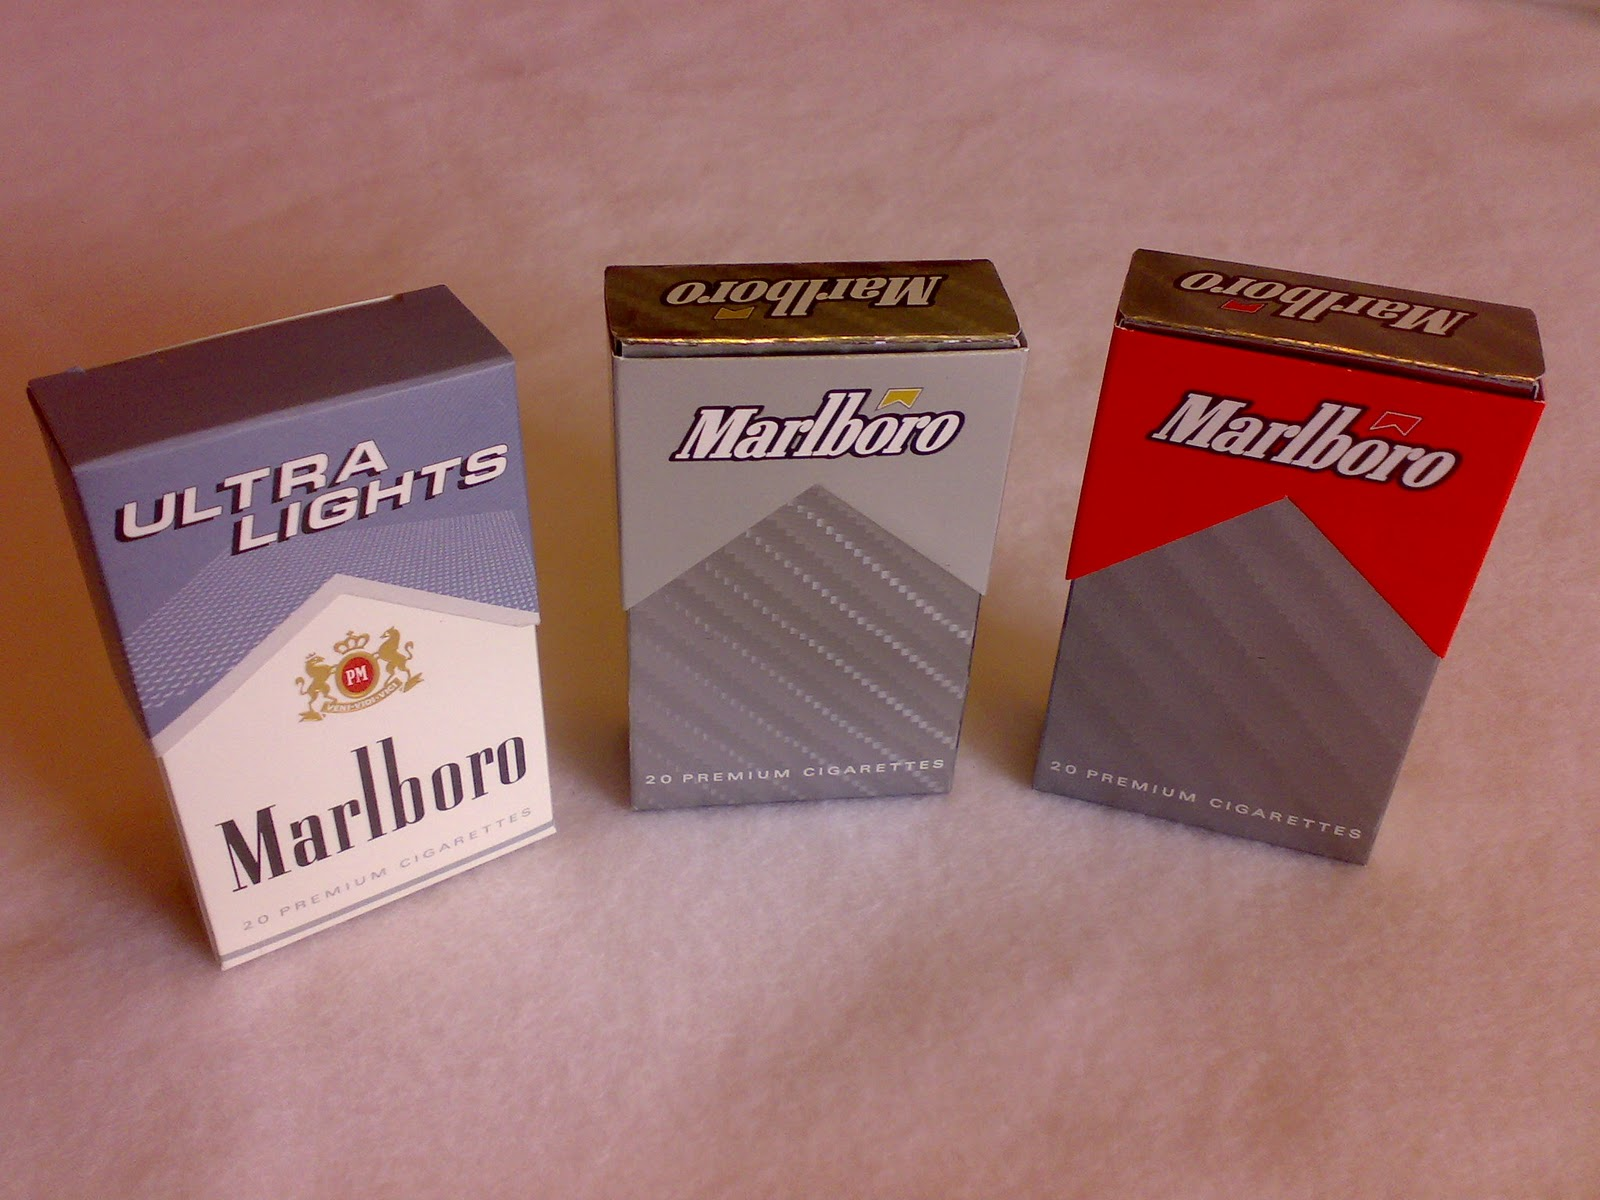 Peter Stuyvesant cigarettes prices South Africa